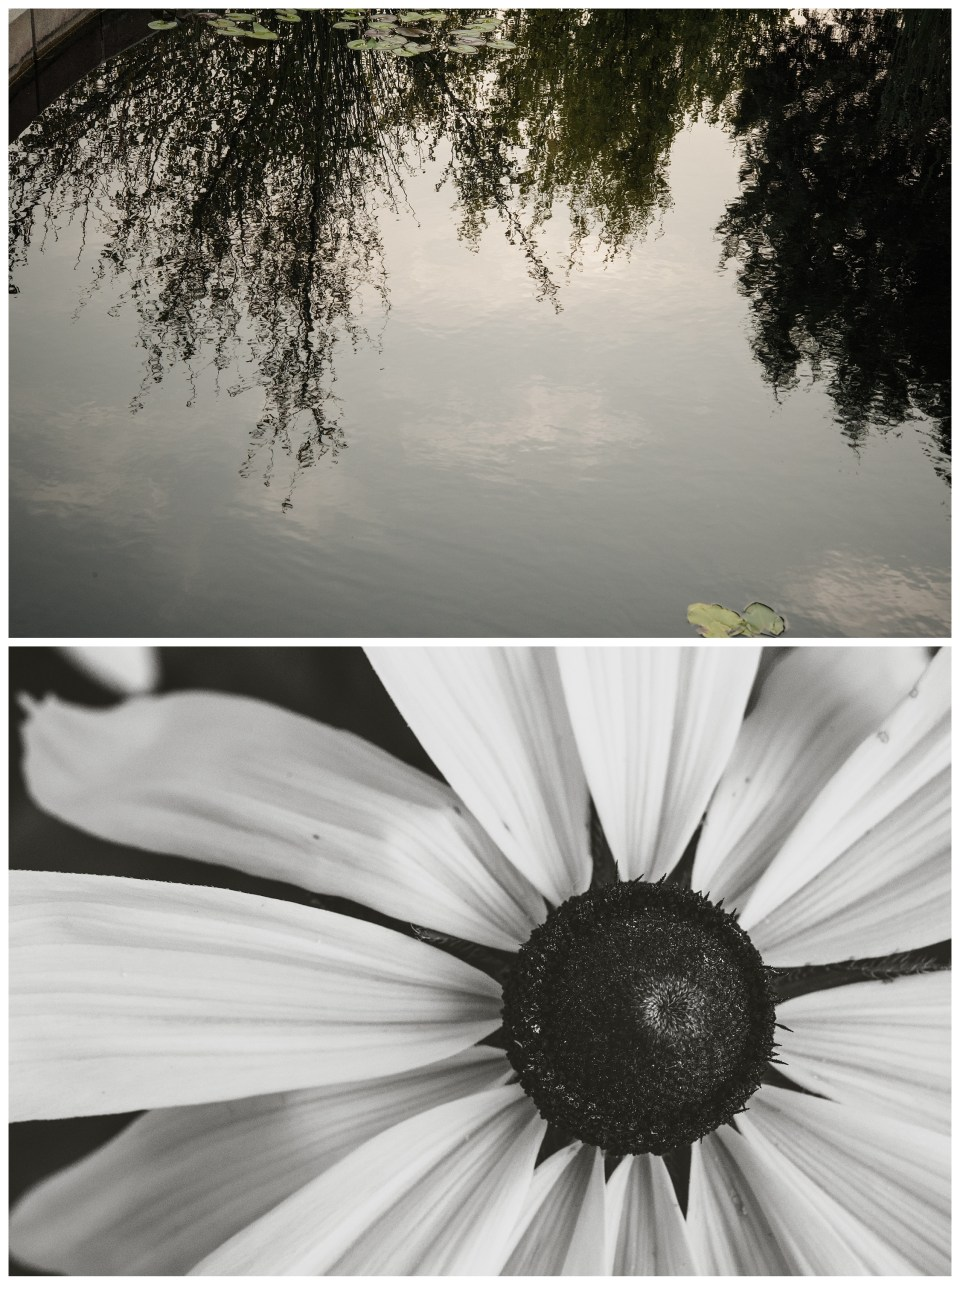 summer vacation denver colorado botanic gardens black and white flower reflection on pond